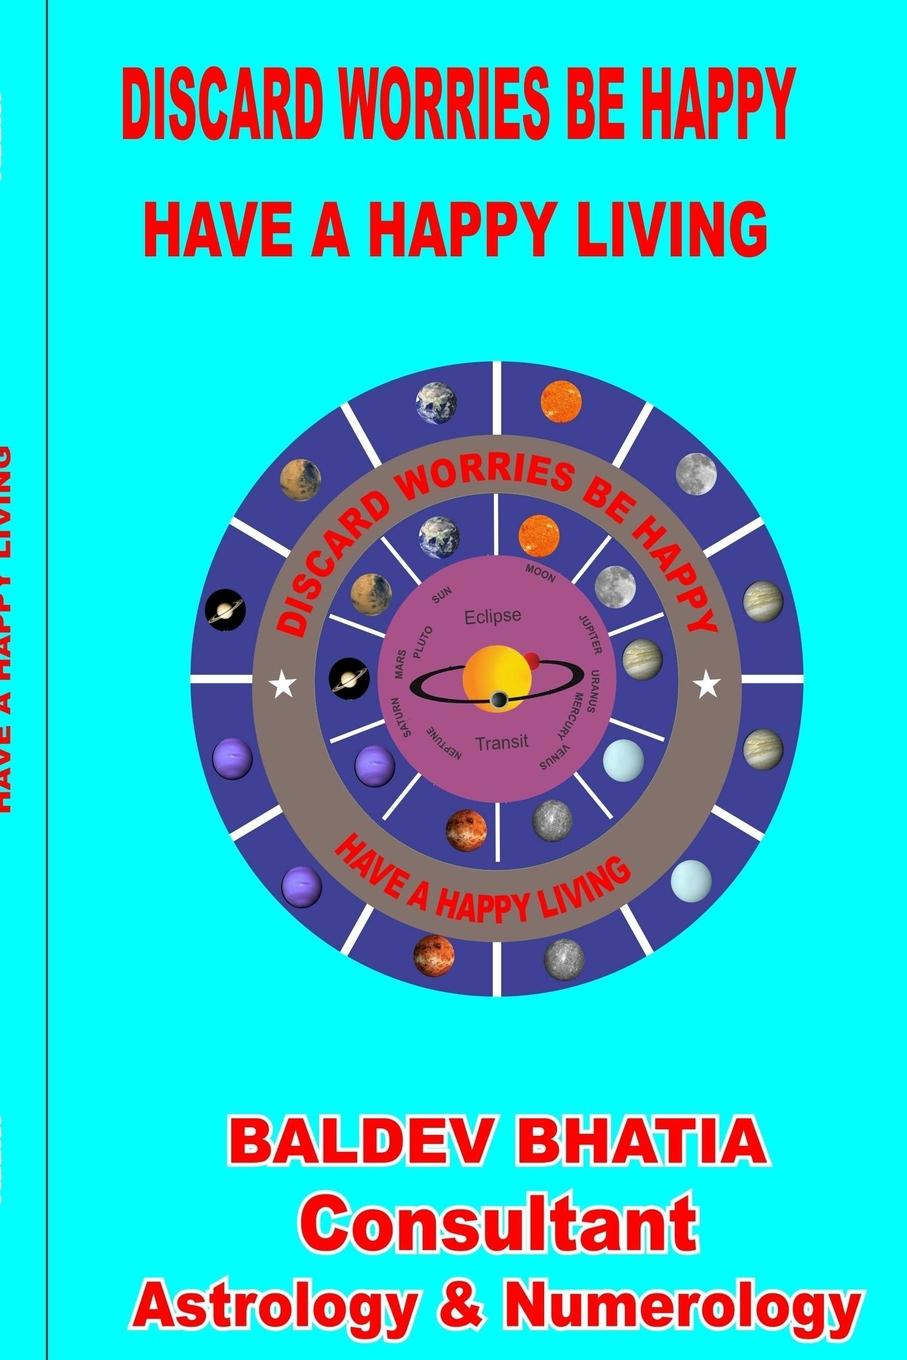 BALDEV BHATIA DISCARD WORRIES BE HAPPY gill hasson positive thinking pocketbook little exercises for a happy and successful life